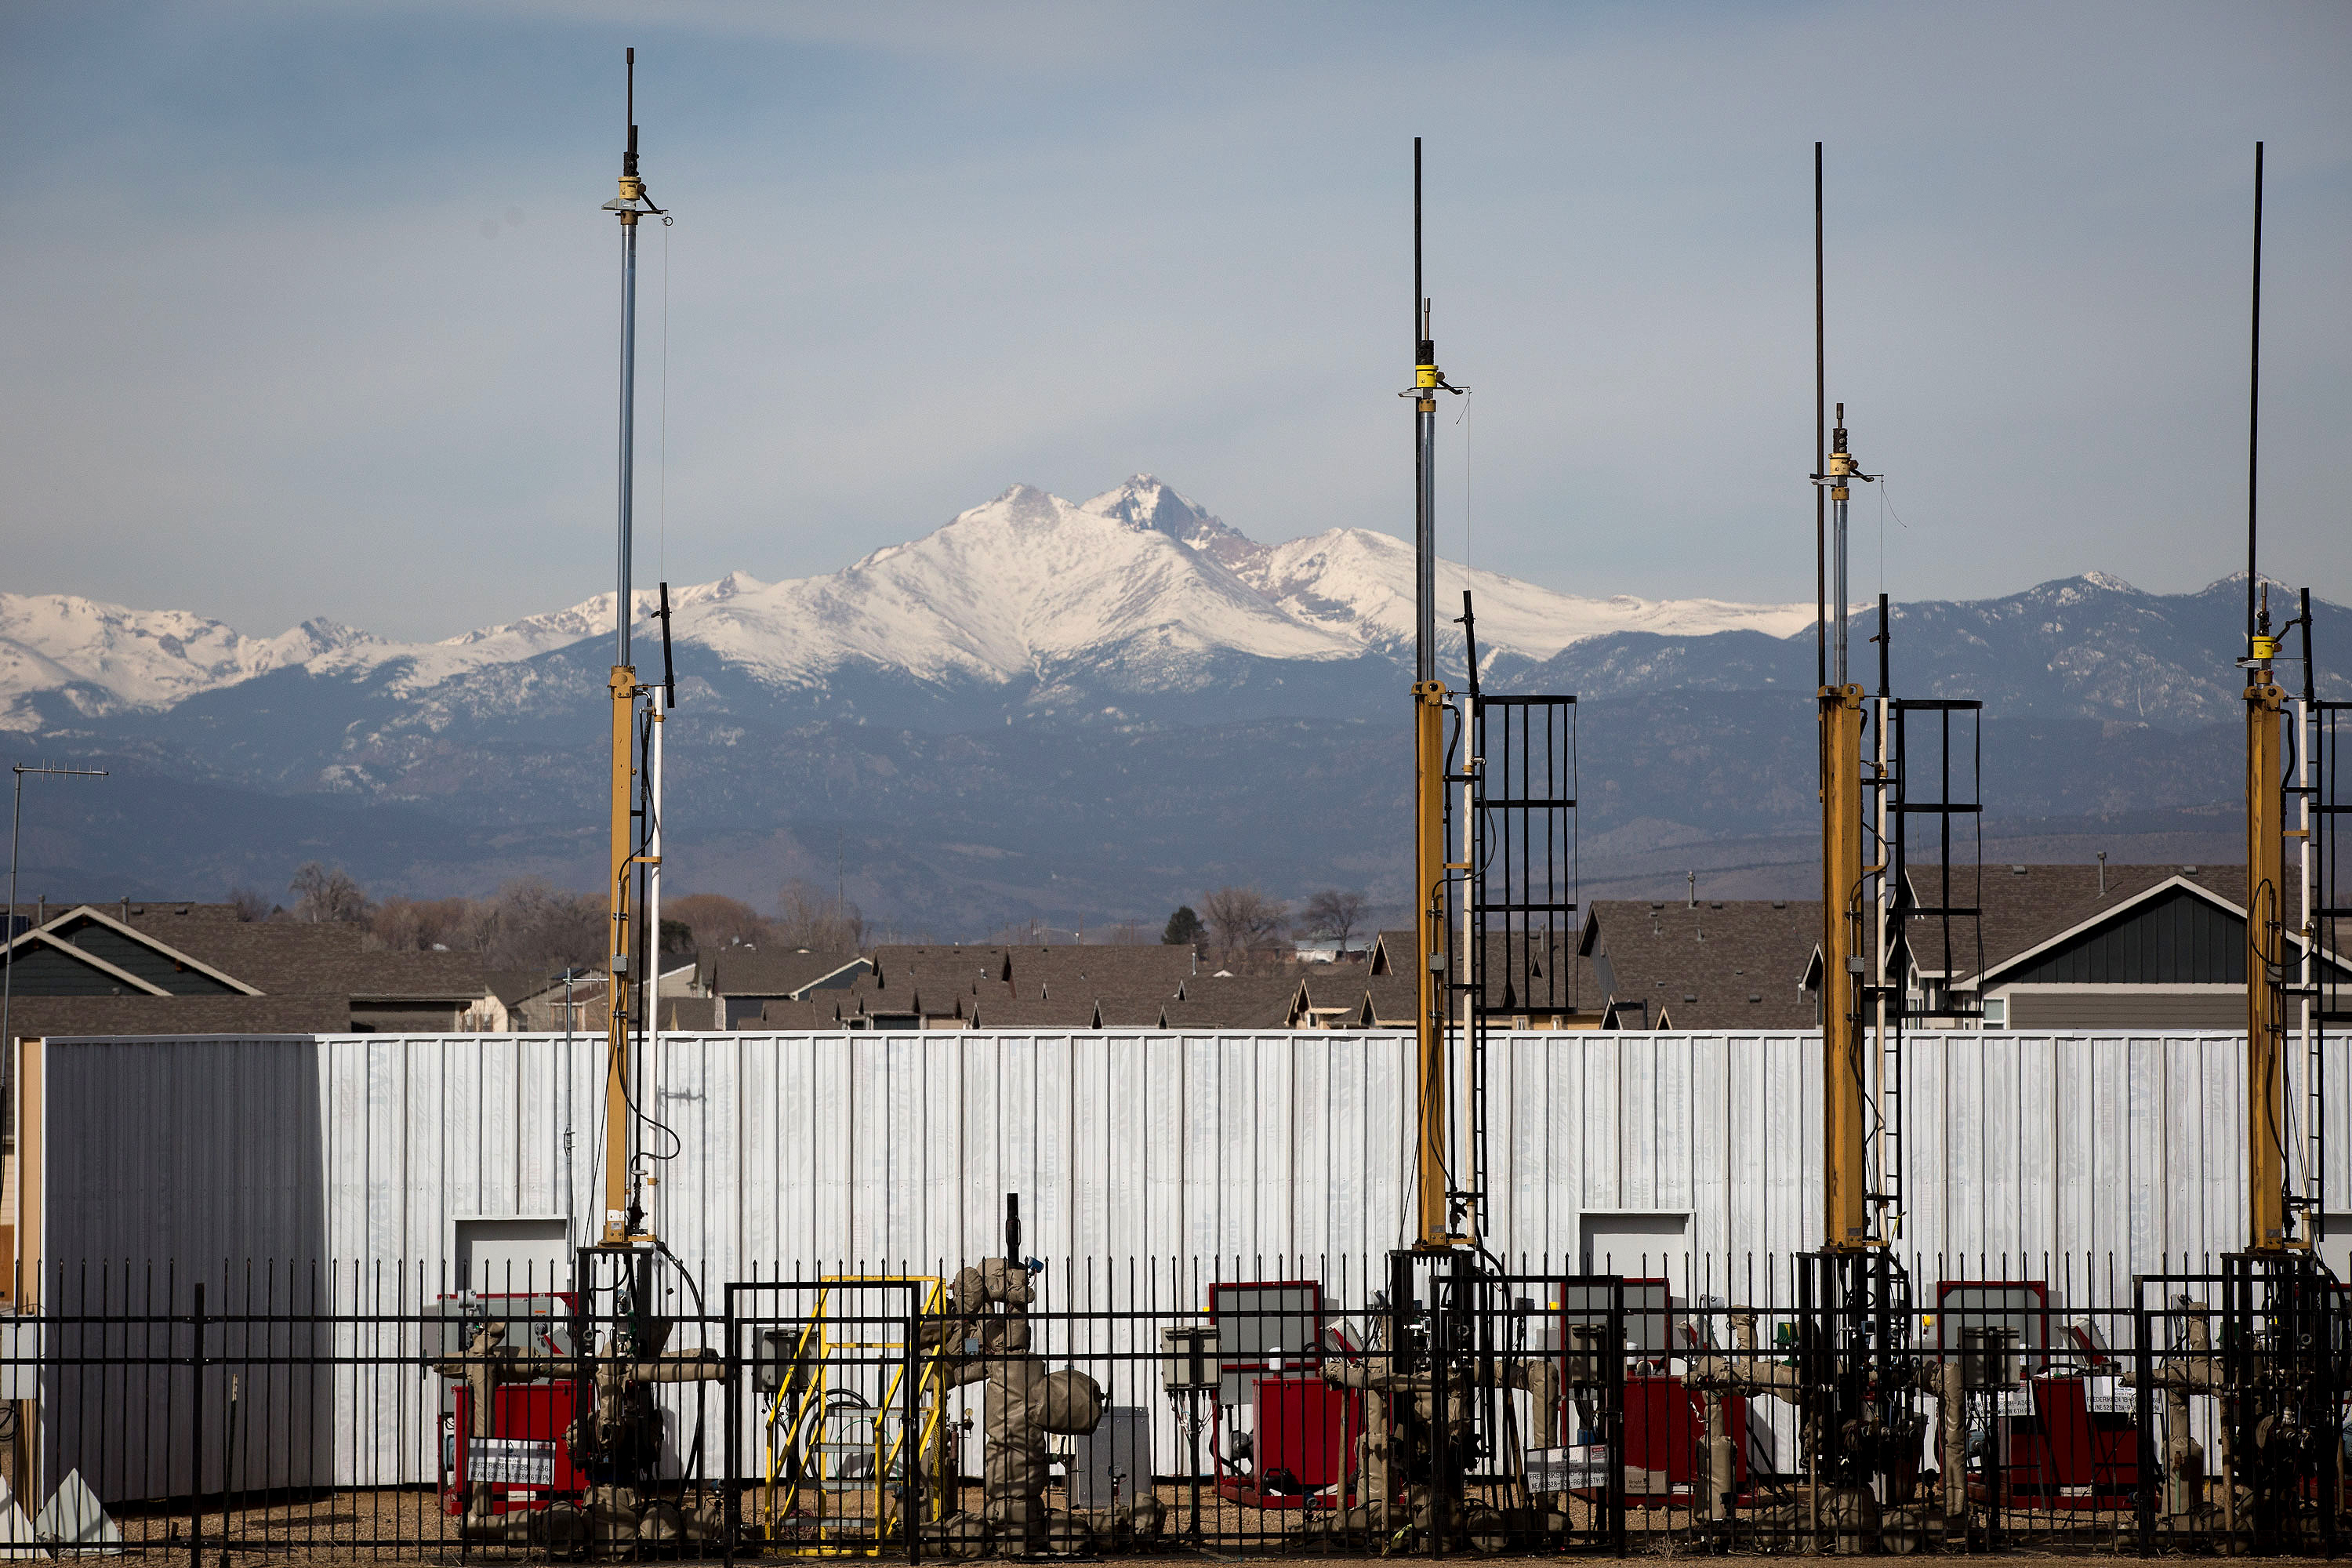 Photo: Oil And Gas Installation Near Homes Longmont HV